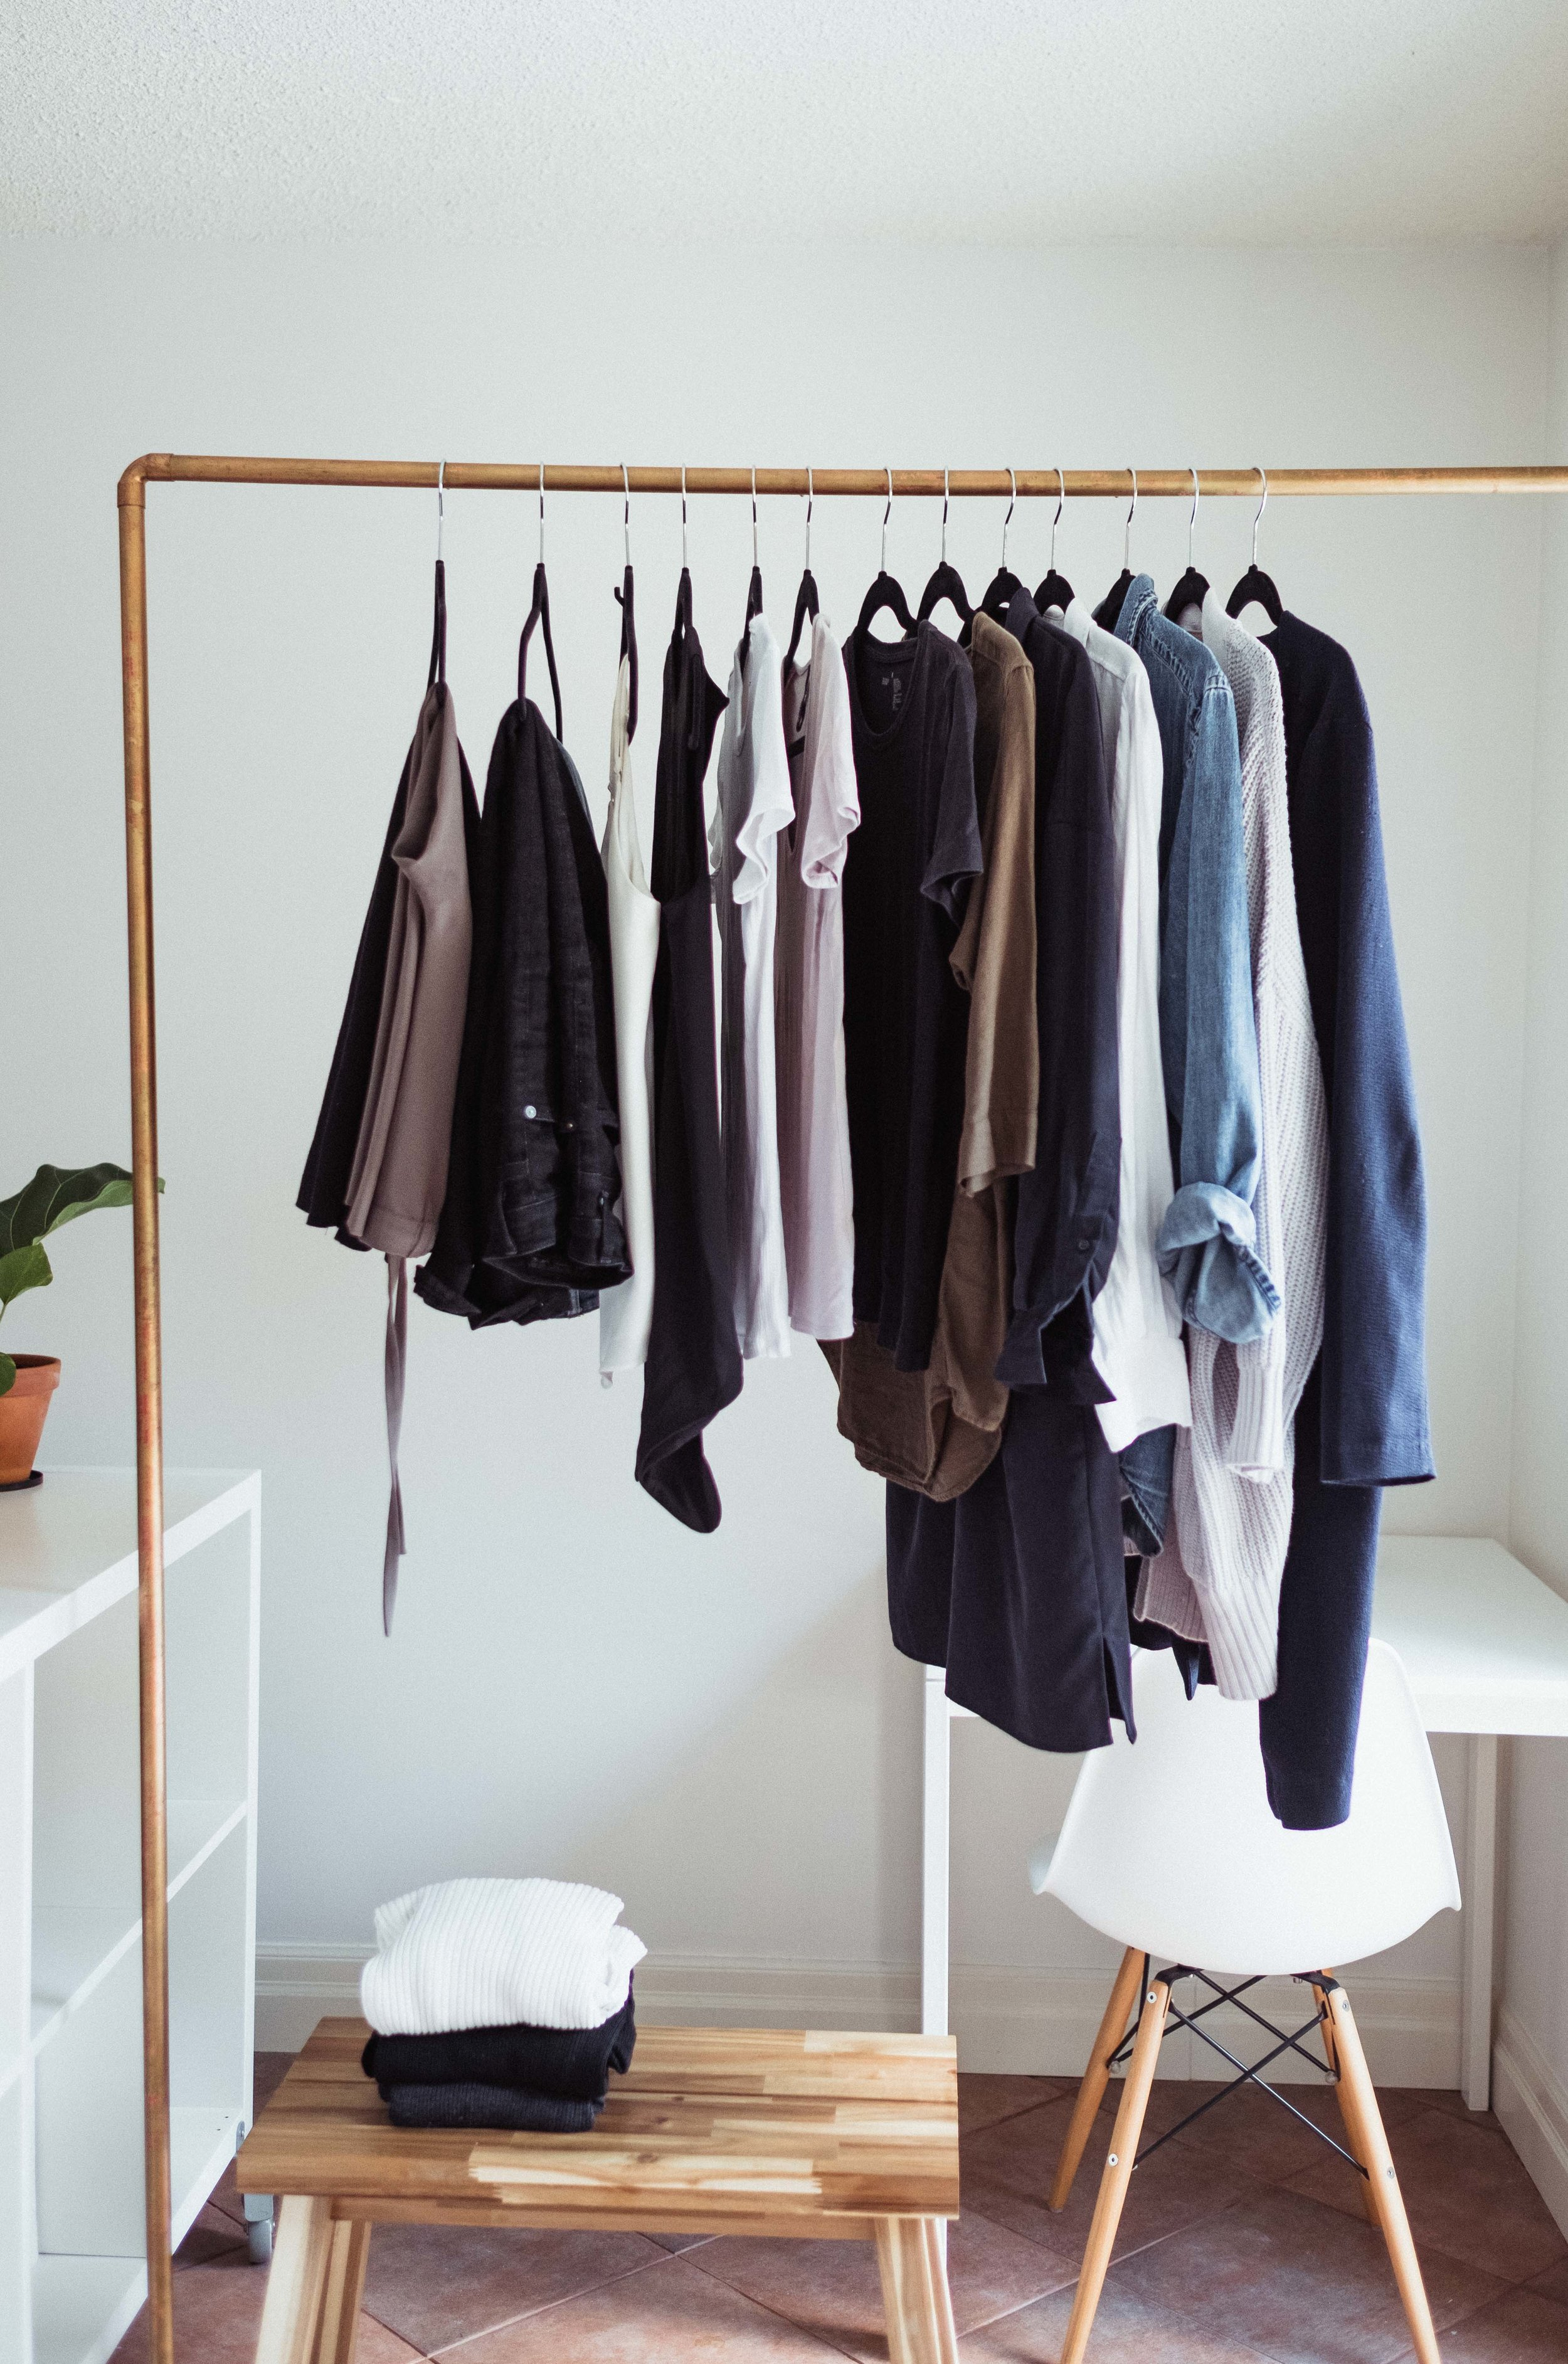 Recent thoughts & My winter capsule - a capsule wardrobe in progress